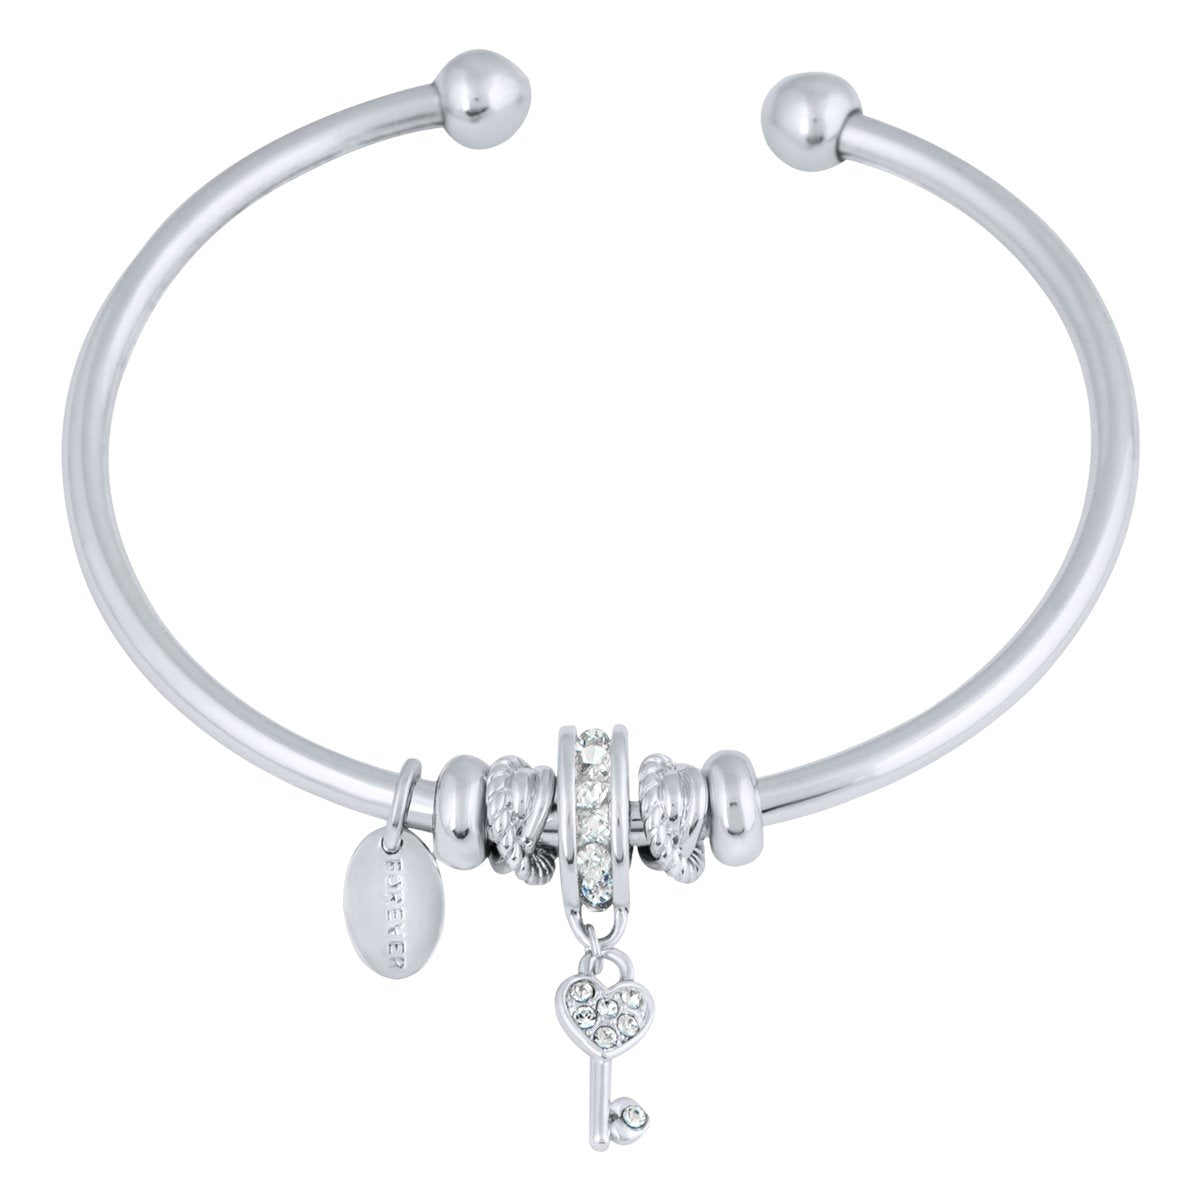 CANIS FLEXI BANGLE BRACELET SILVER CAL